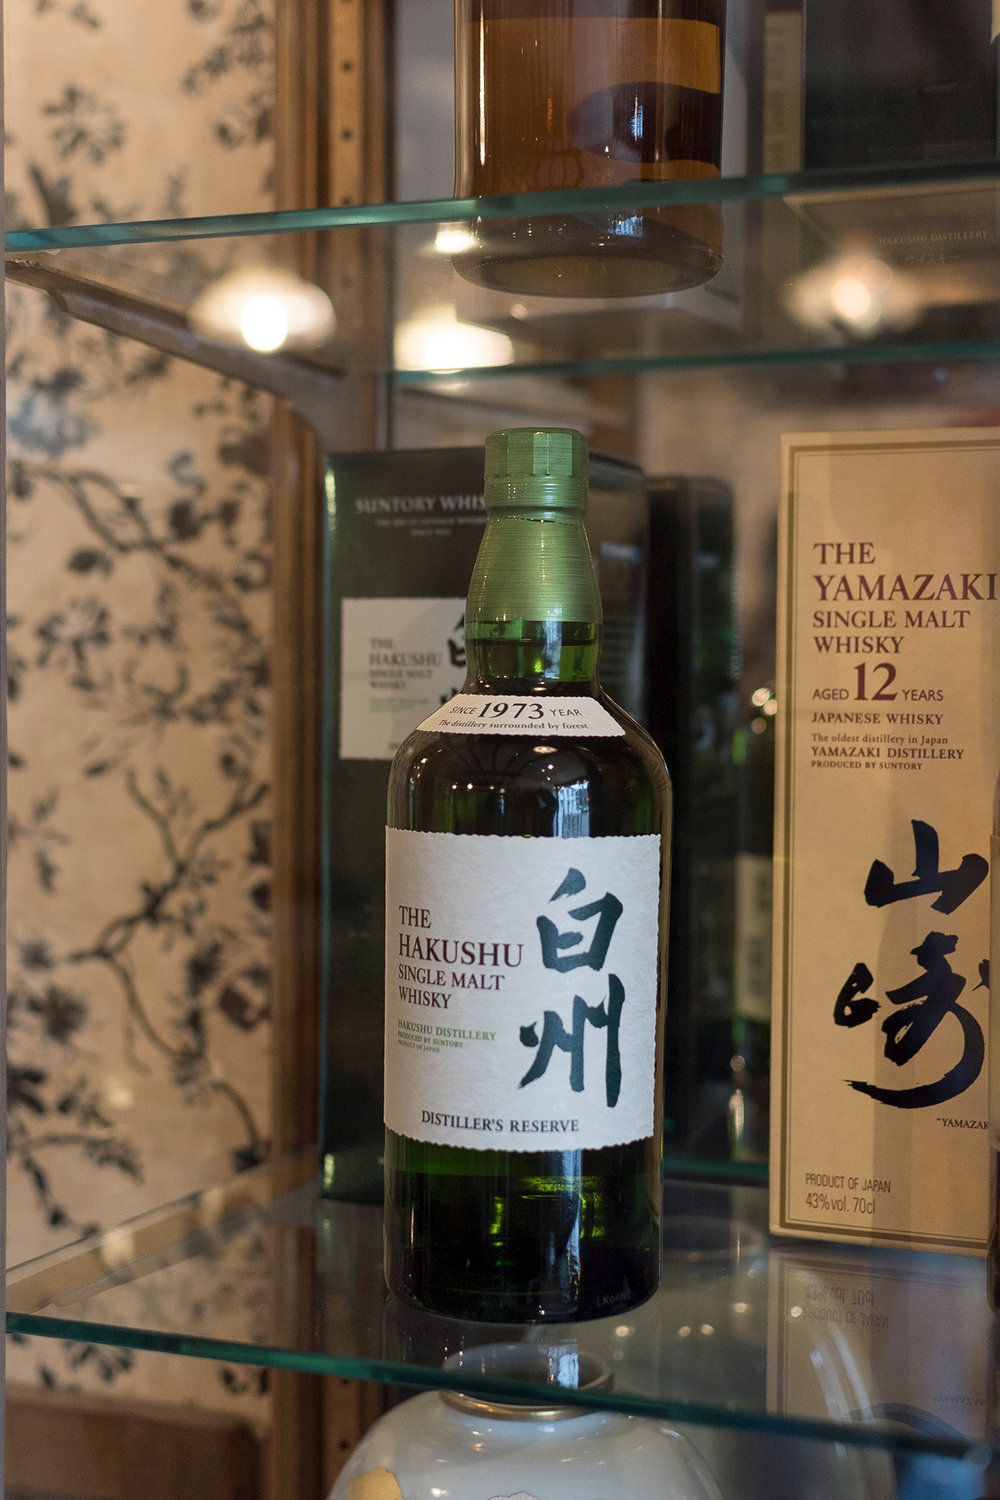 Kakashu Single Malt Whisky